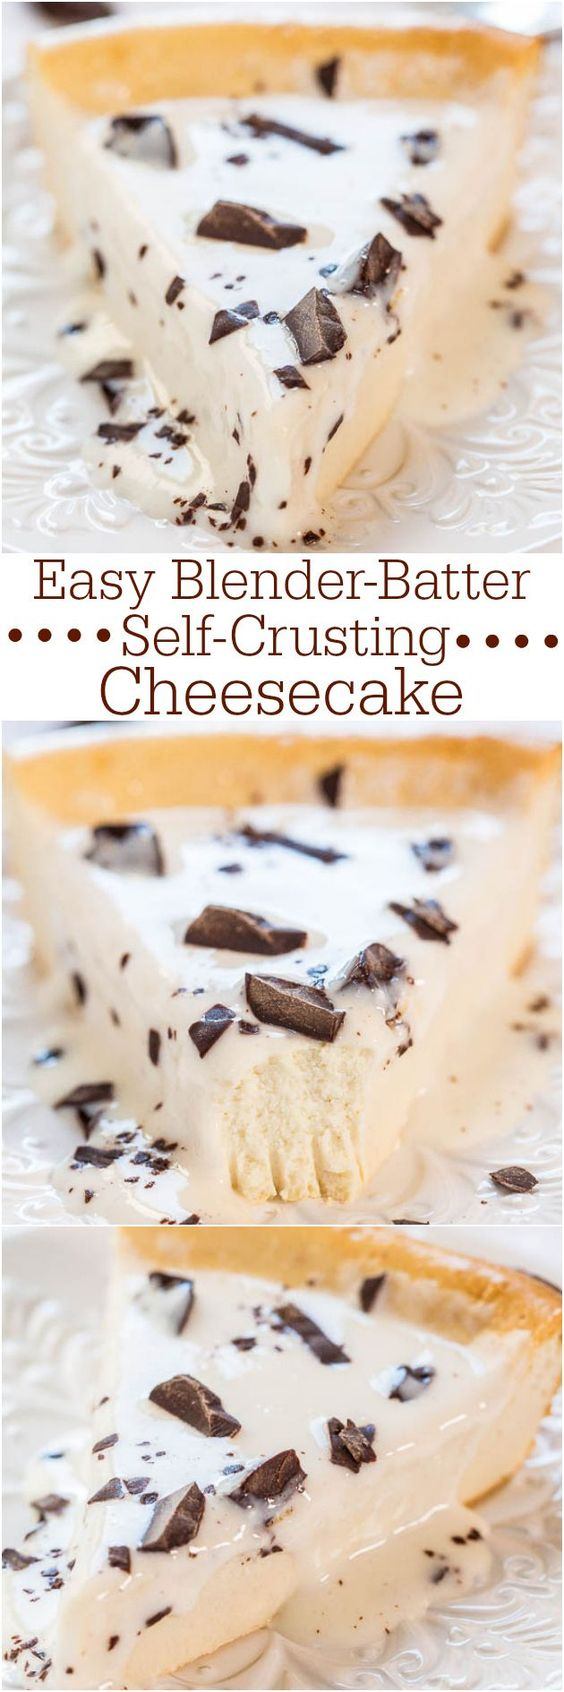 Easy Blender-Batter Self-Crusting Cheesecake Recipe via Averie Cooks - No crust to make and whiz the batter together in the blender!! Easy, foolproof, and so good!!